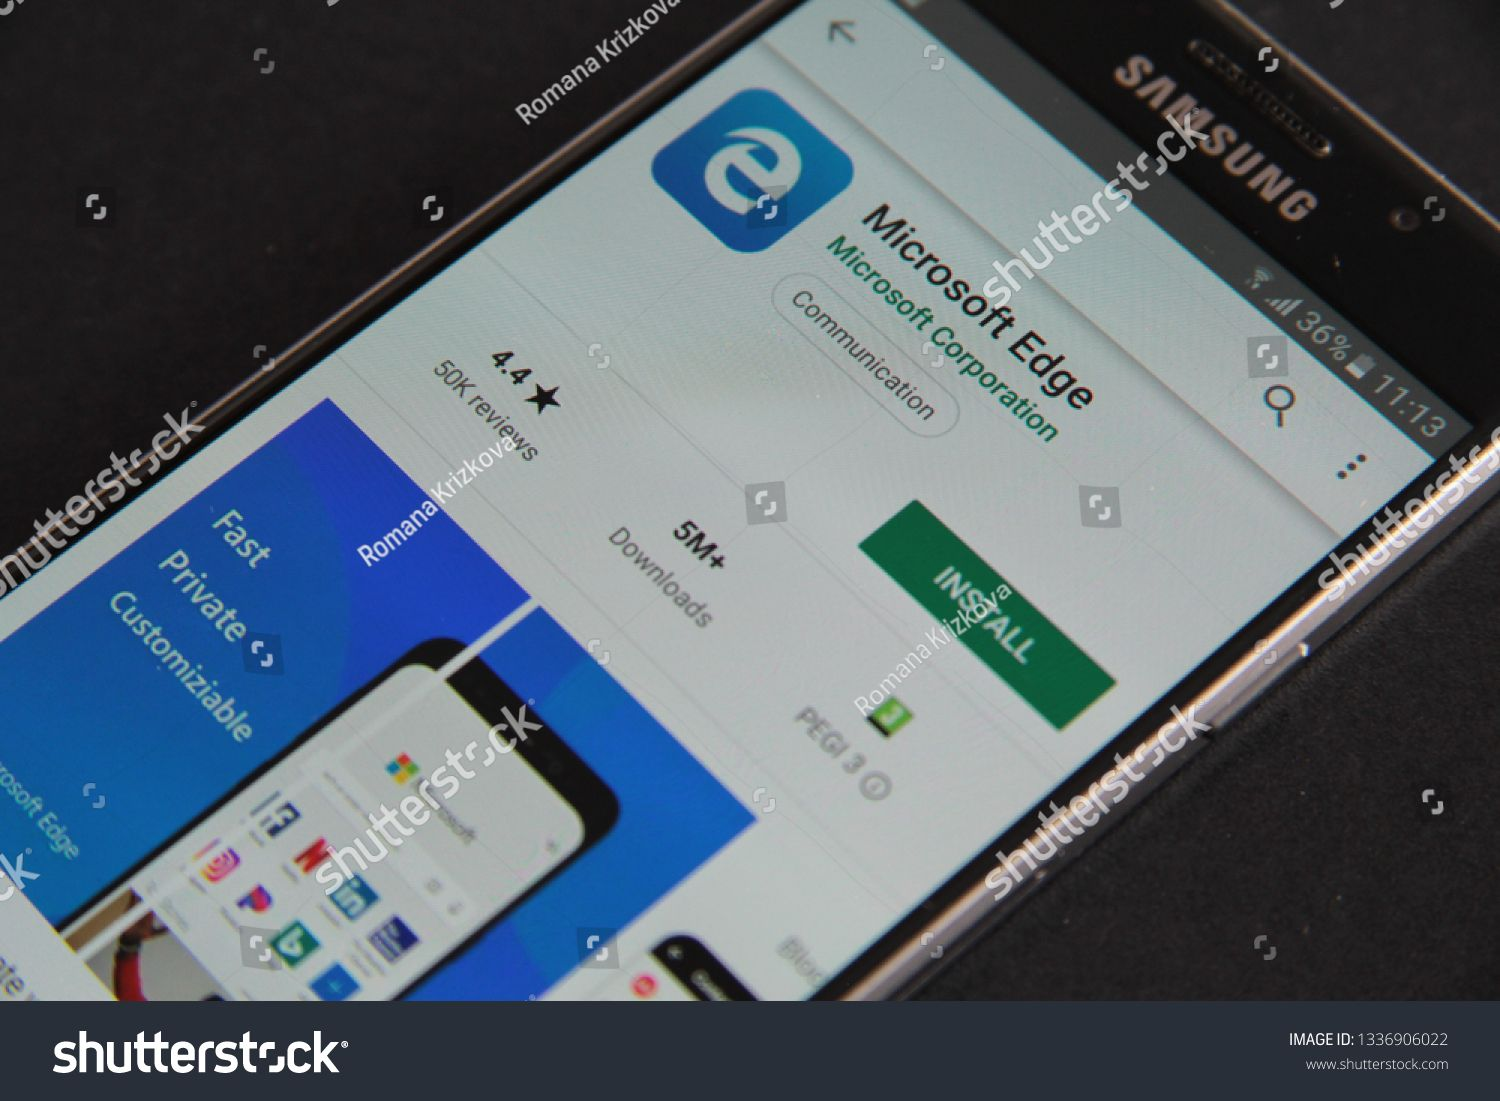 Prague, Czech Republic - March 12 2019: Microsoft Edge mobile app on the display of Samsung mobile phone #Ad , #spon, #March#Prague#Czech#Republic